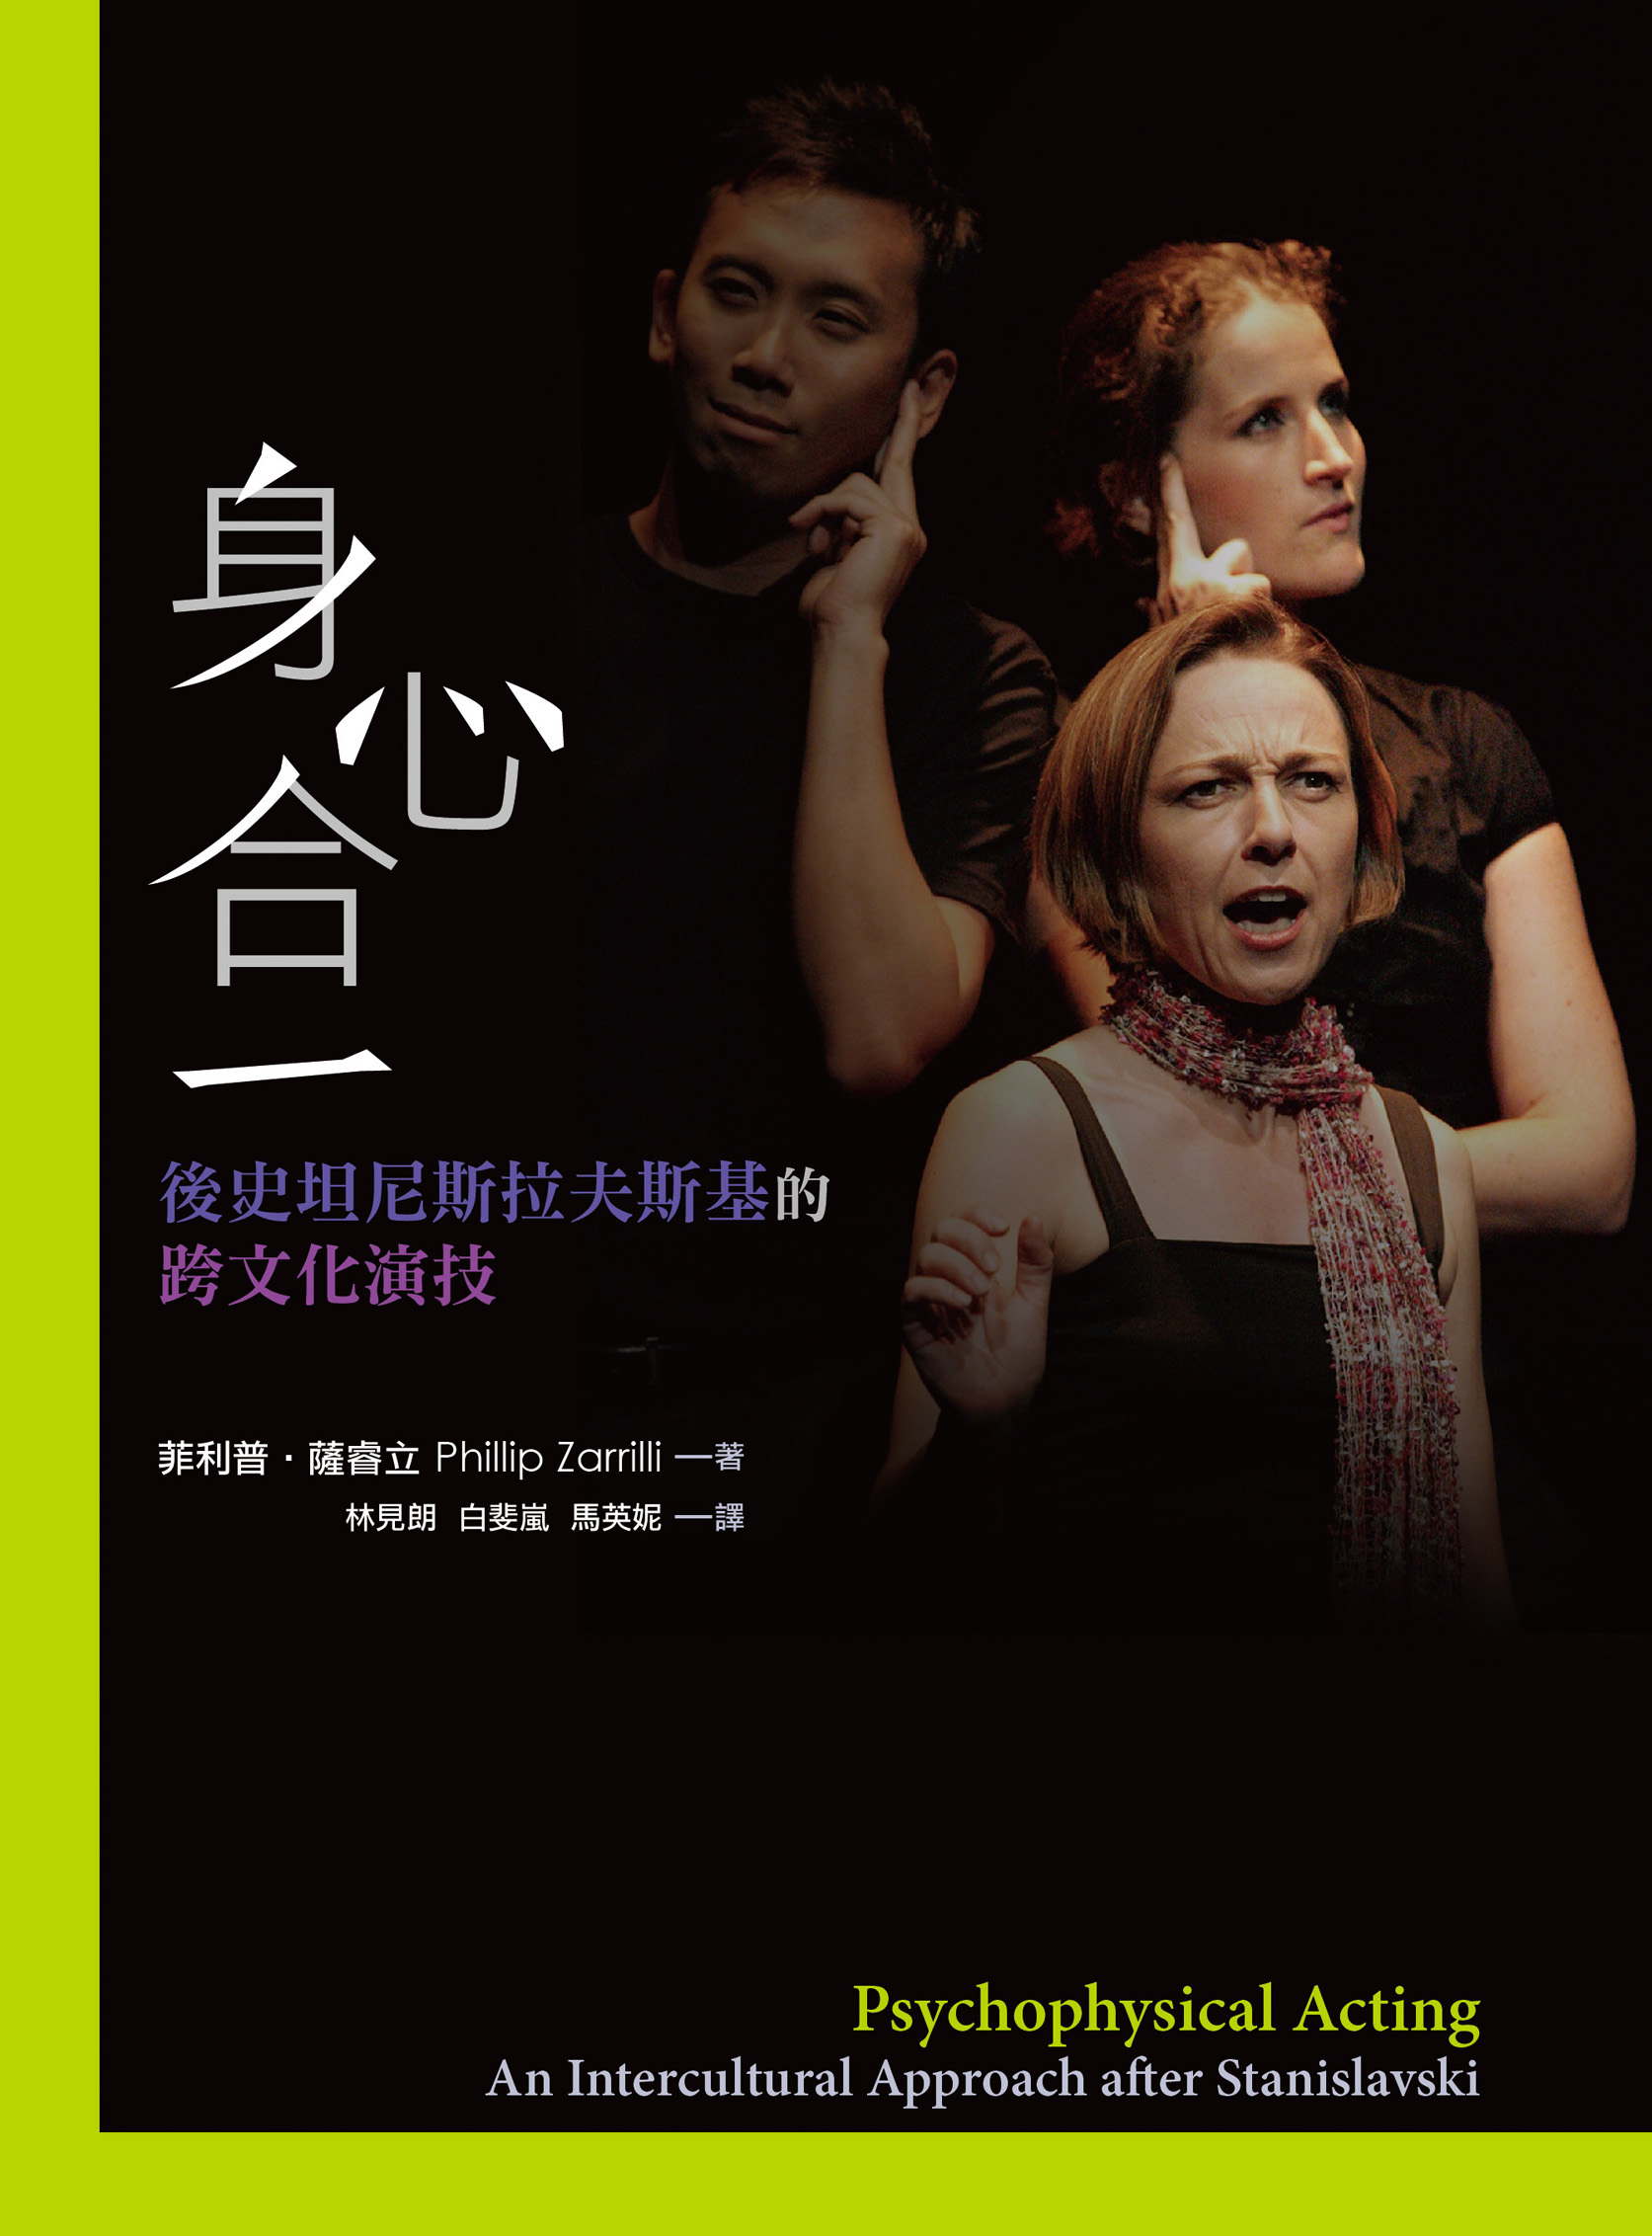 Mandarin translation published by Bookman Press, Taipei, 2014.